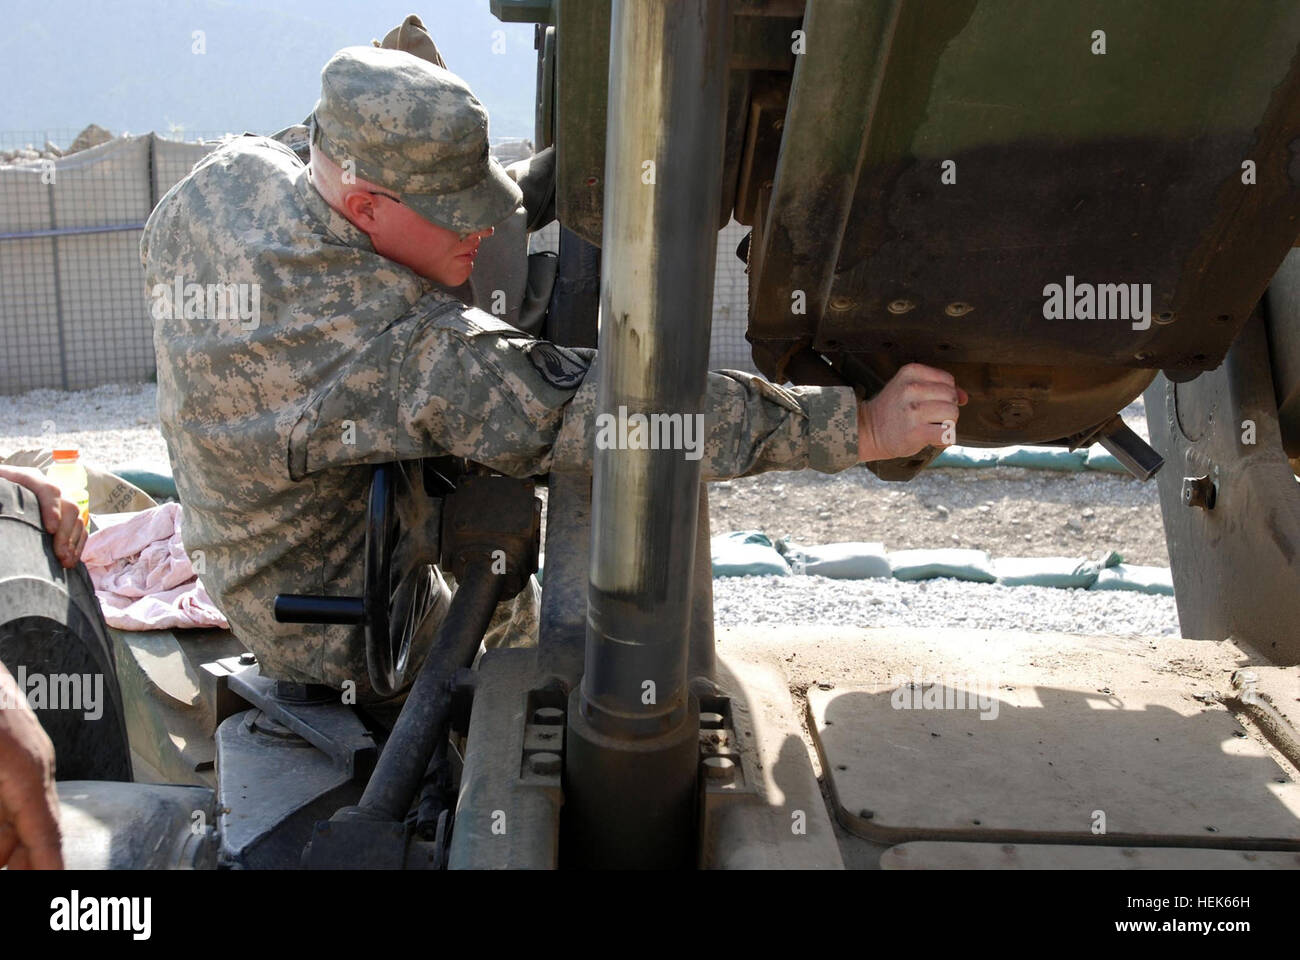 070807-A-6849A-010 – Army Sgt. Daniel Martwick, Headquarters and Headquarters Company, 173rd Airborne Brigade Combat - Stock Image